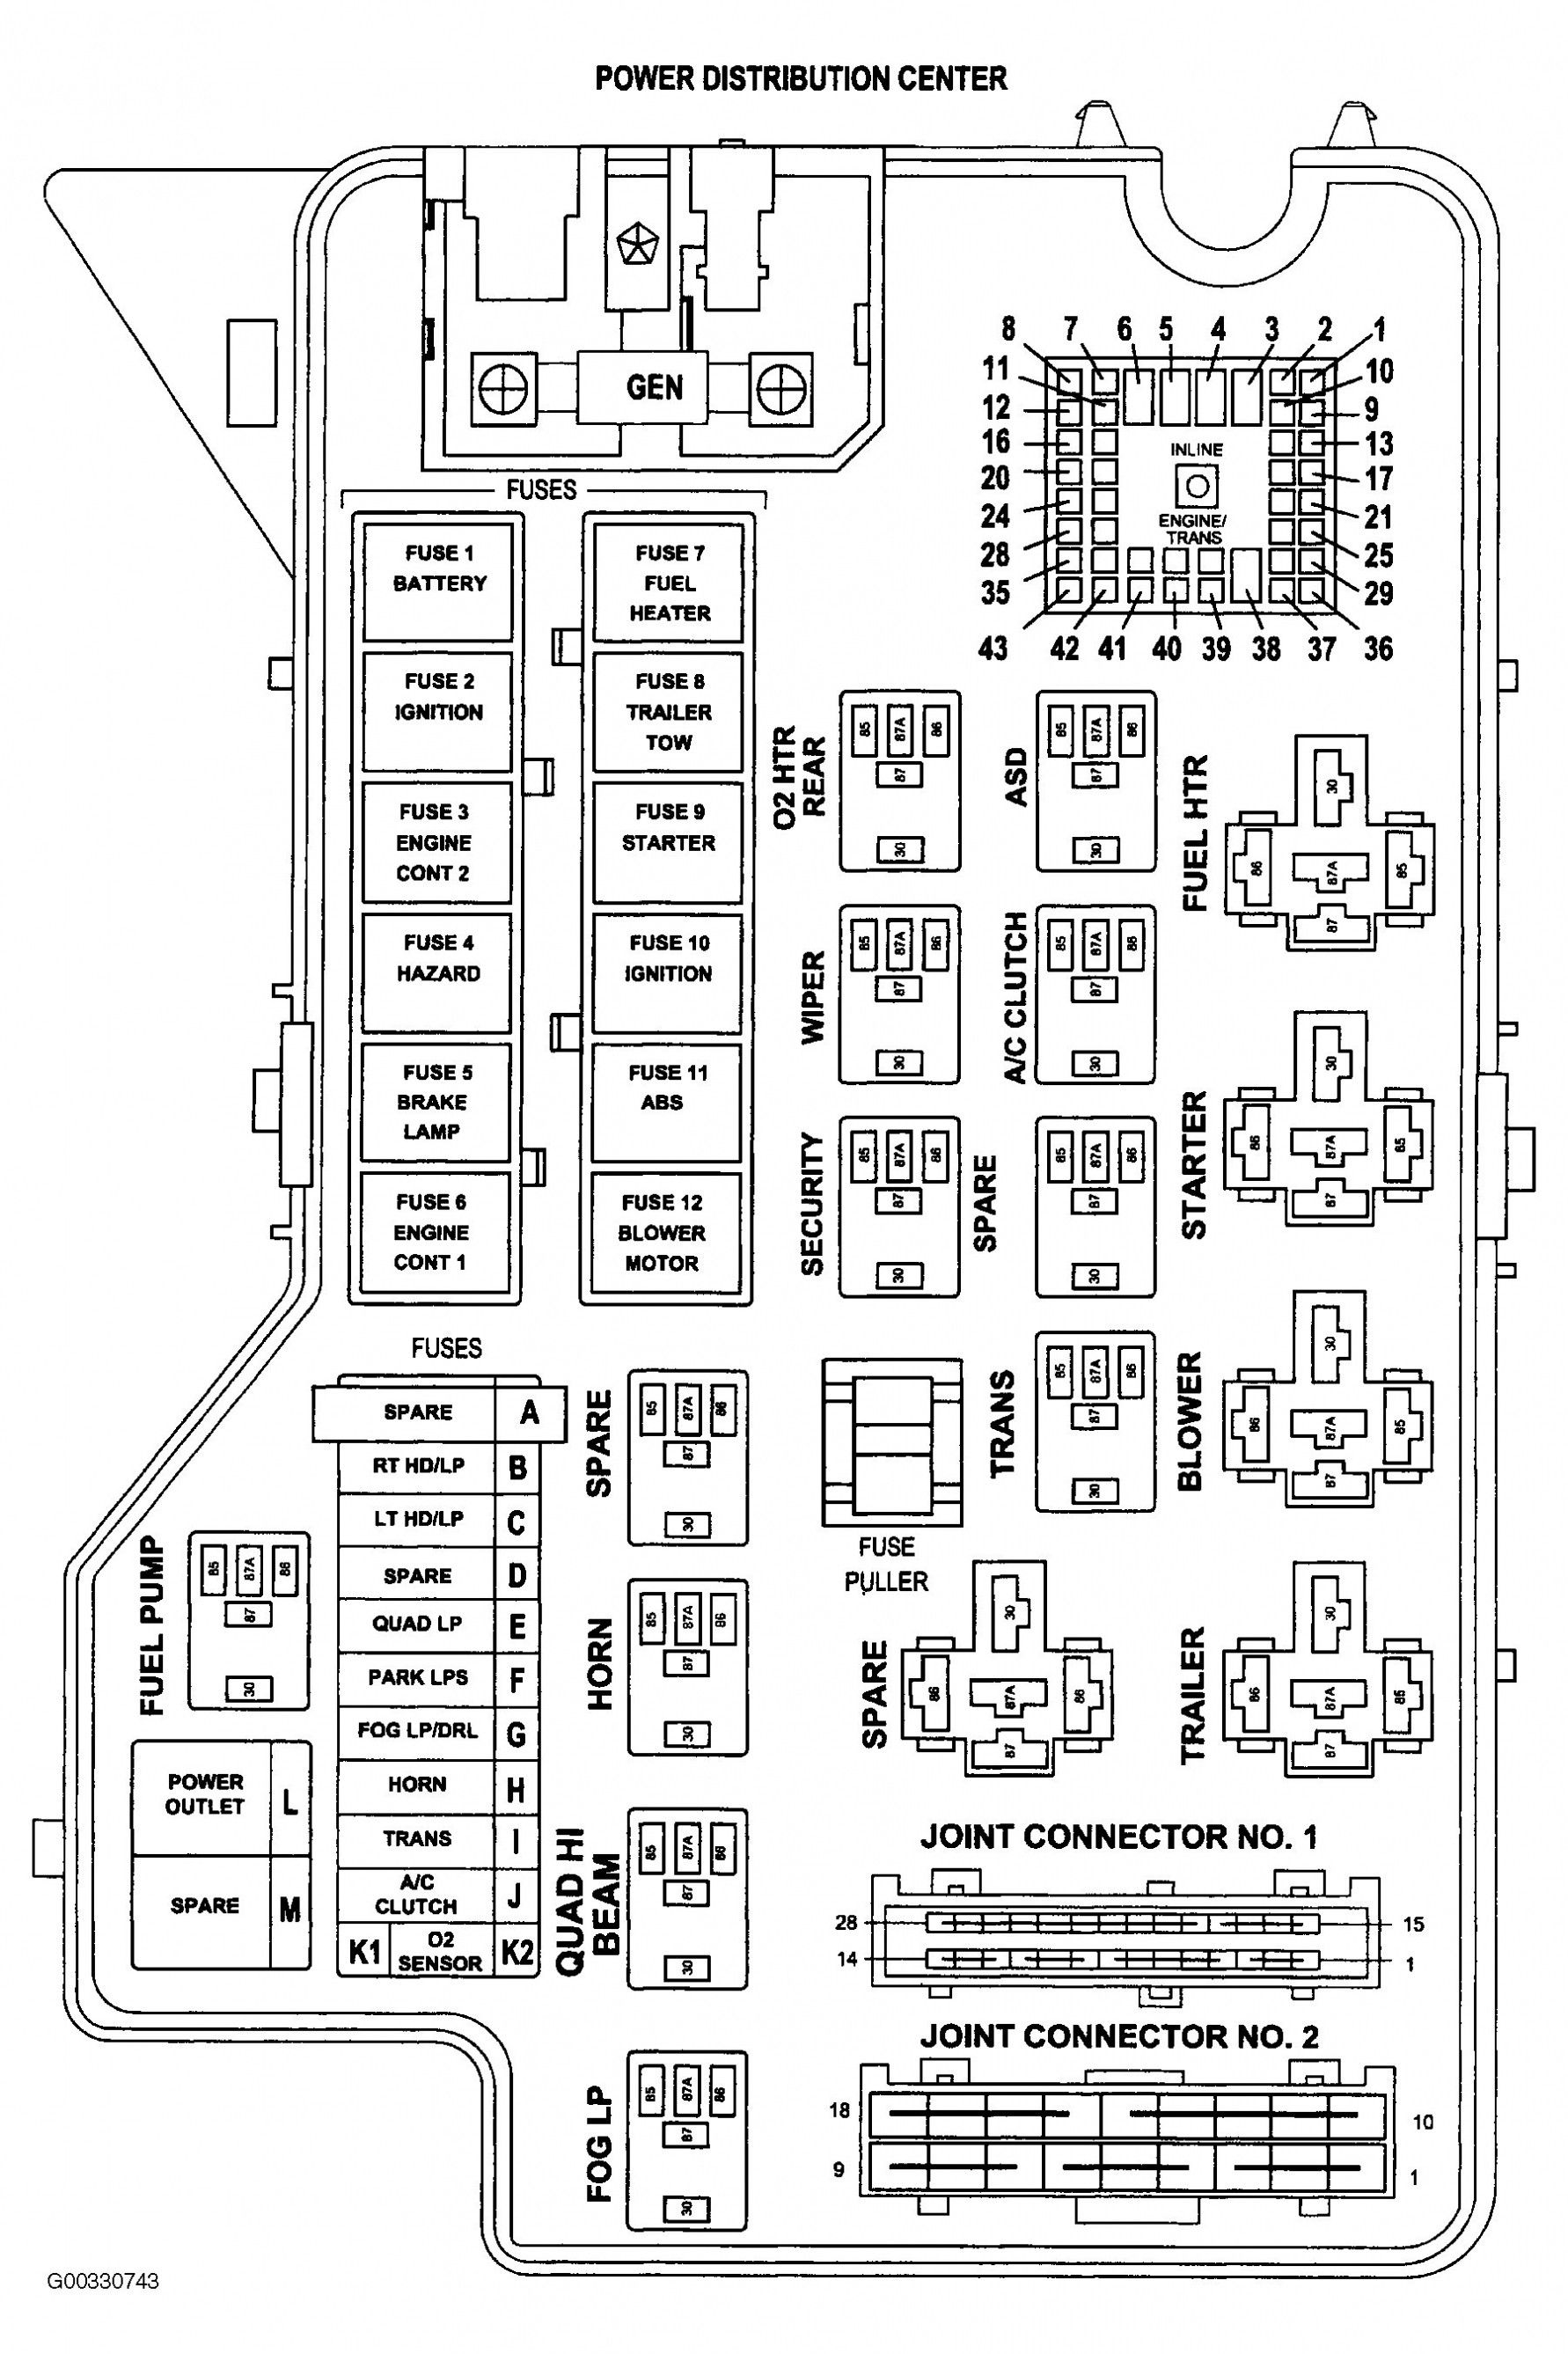 hight resolution of new 2011 dodge ram 1500 radio wiring diagram diagram diagramsample diagramtemplate wiringdiagram